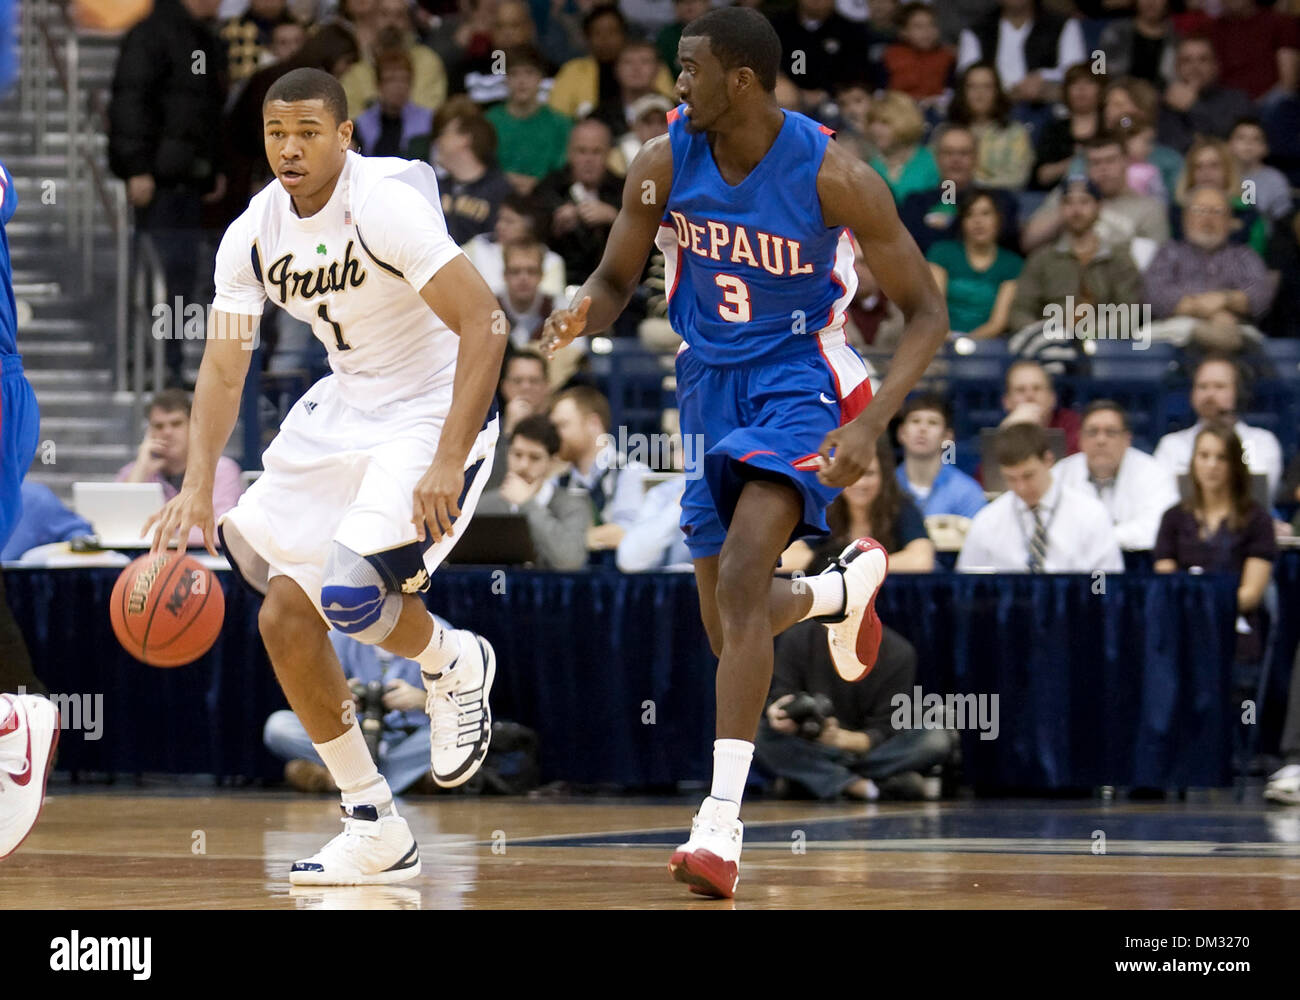 DePaul Forward Devin Hill 3 and Notre Dame Forward Tyrone Nash